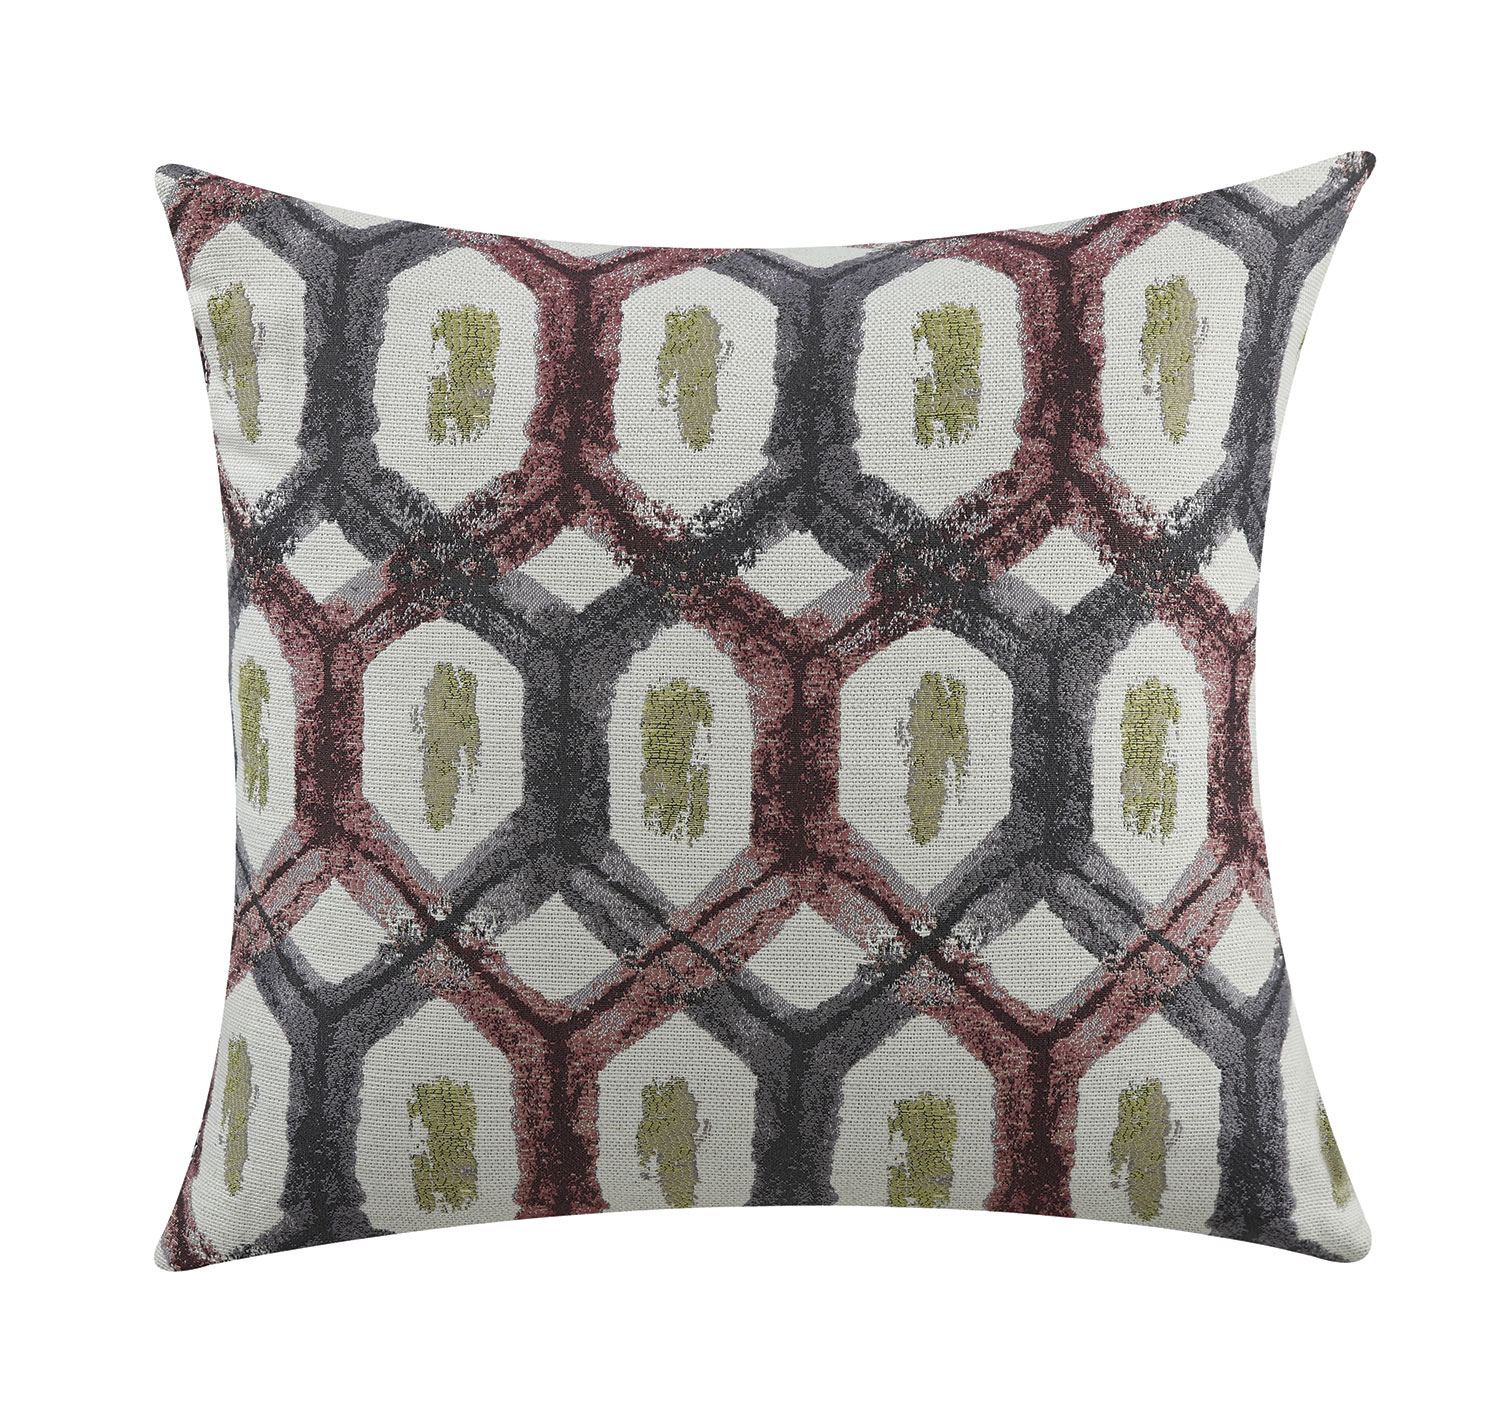 Coaster Throw Pillows Pillow - Item Number: 905109